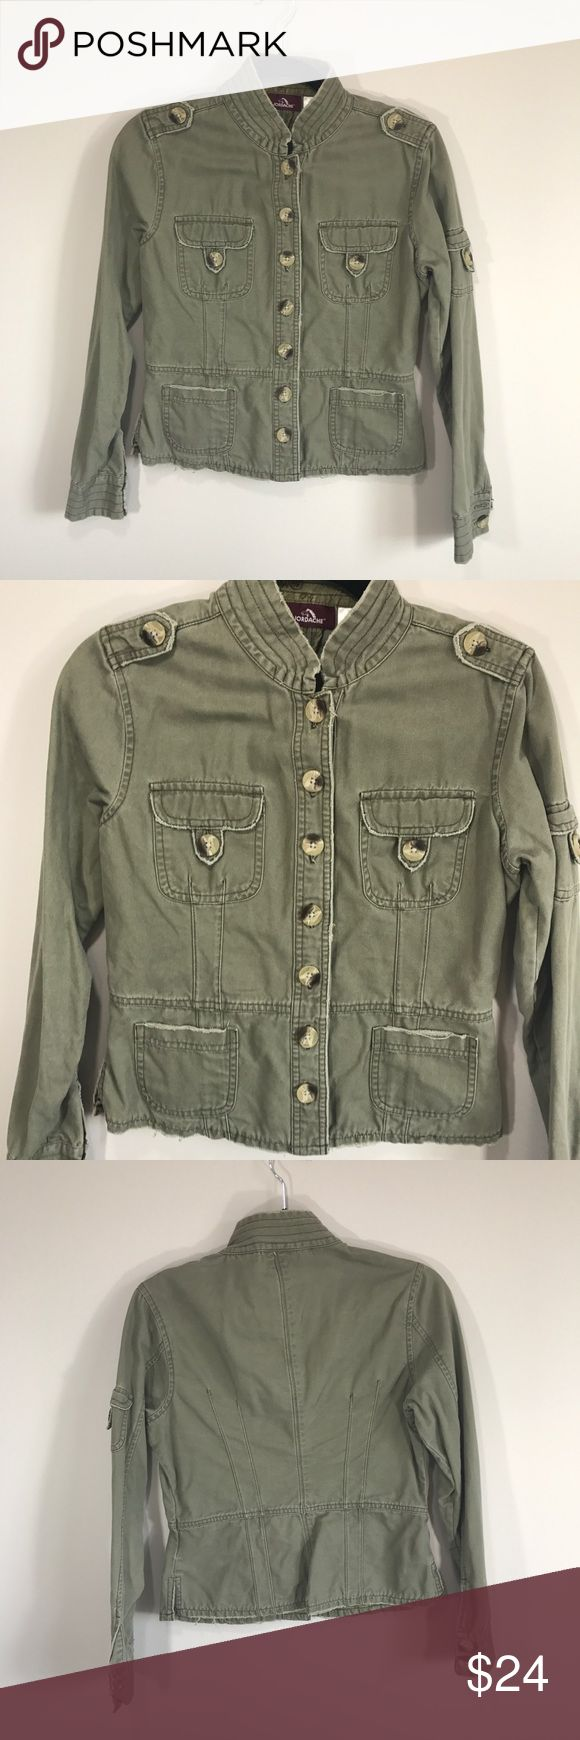 """Vintage 90s Army Green Military Style Jacket In excellent vintage condition. No size tags. Approximately size XS. Please refer to measurements to ensure a proper fit! Pit to pit: 16"""" Length: 20 Arm Length: 22"""" jordache Jackets & Coats Utility Jackets"""